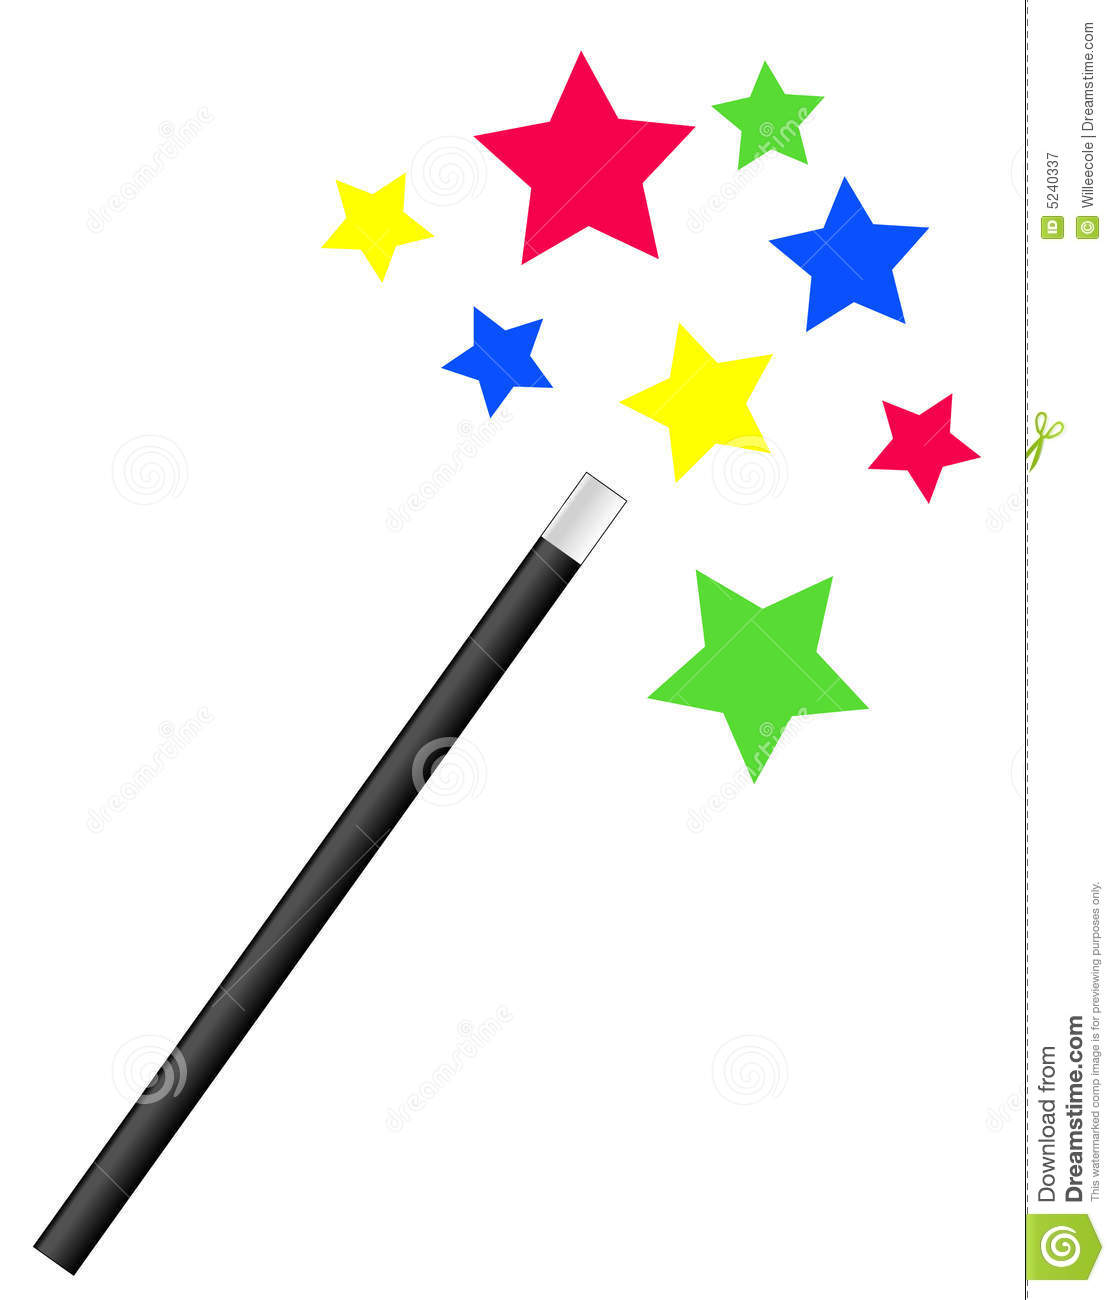 Magic Wand And Stars Royalty Free Stock Photography - Image: 5240337